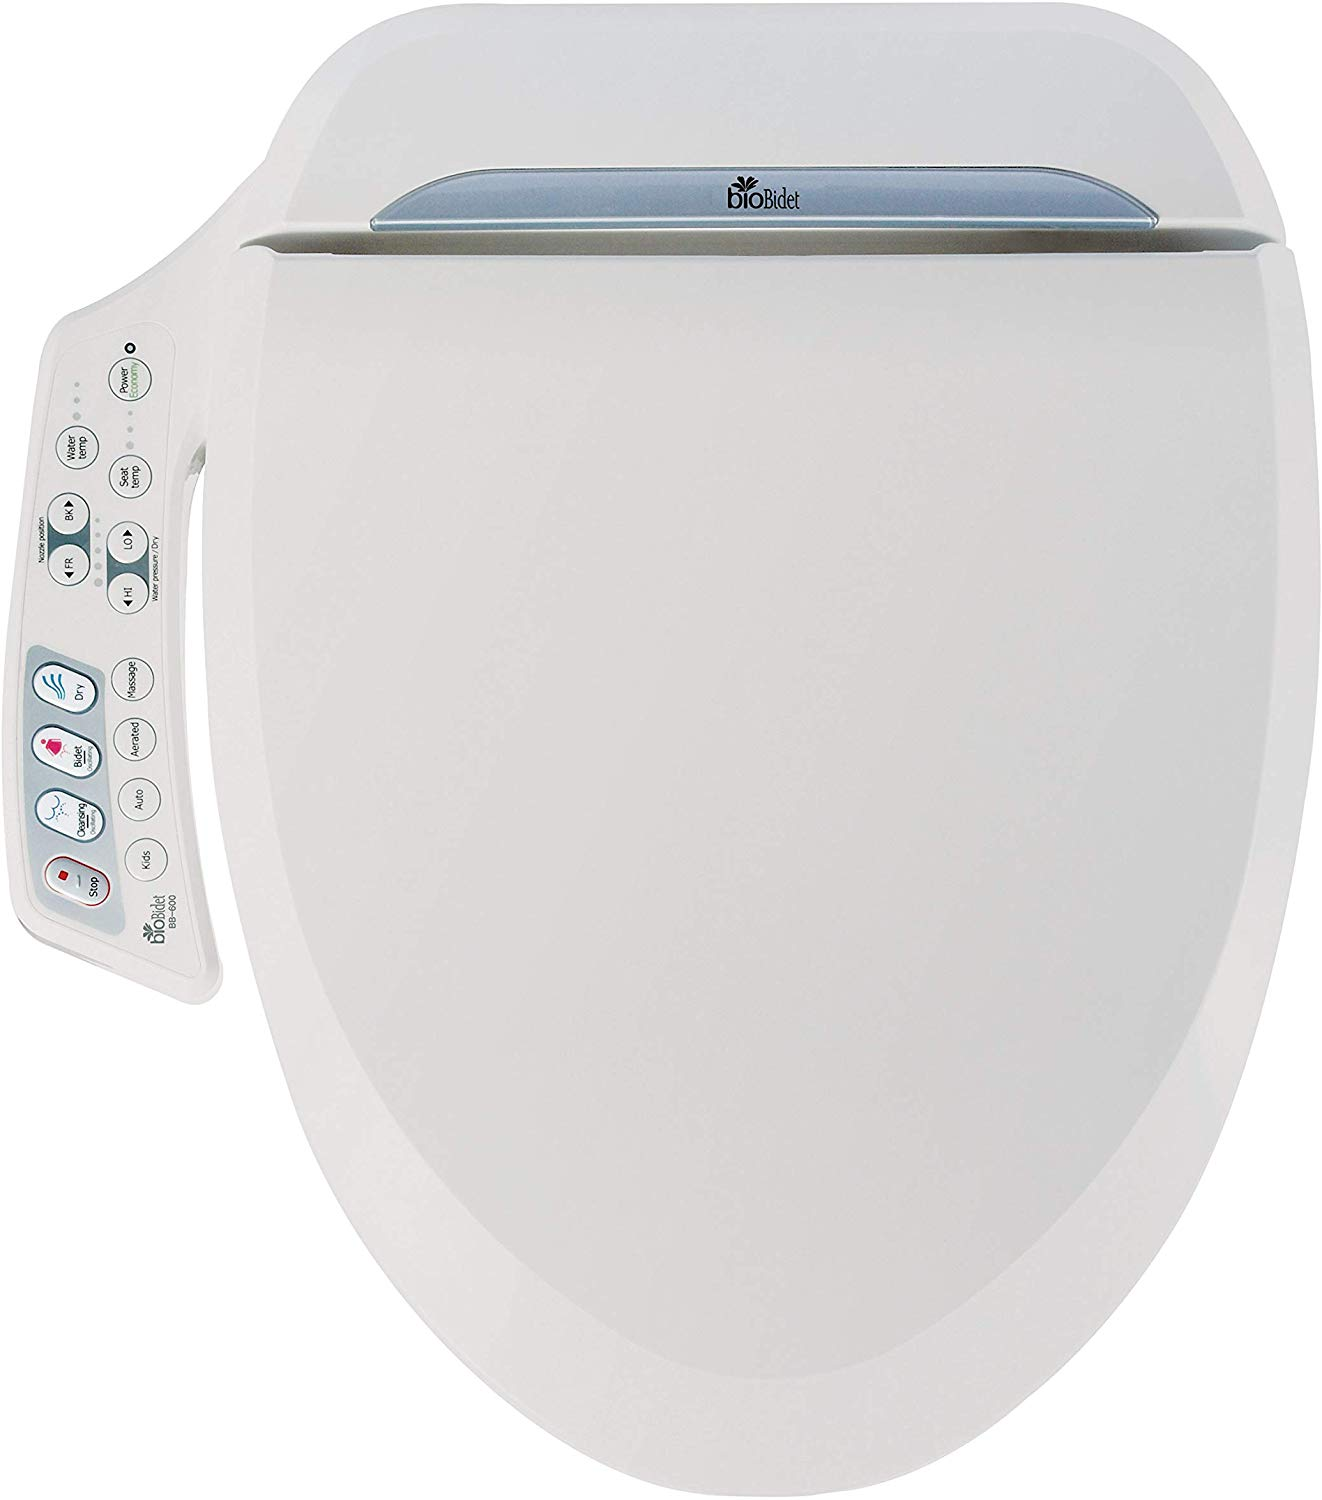 Bio Bidet Ultimate BB-600 Advanced Bidet Toilet Seat - Heated Toilet Seats